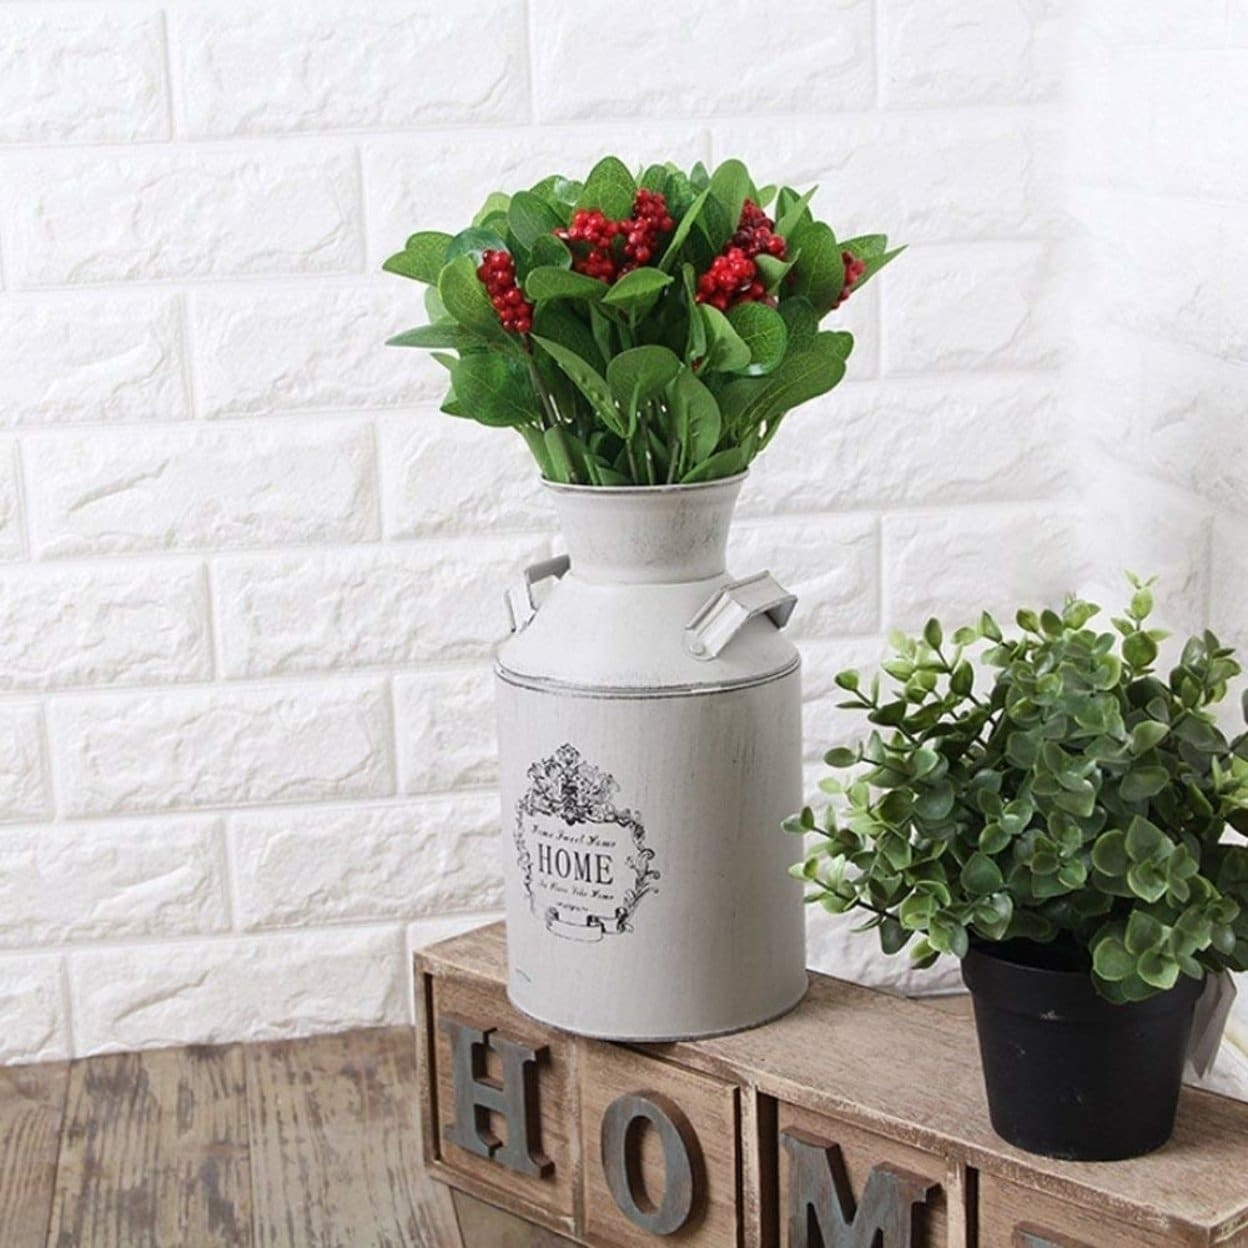 Home Decor Watering Honey French Style Country Rustic